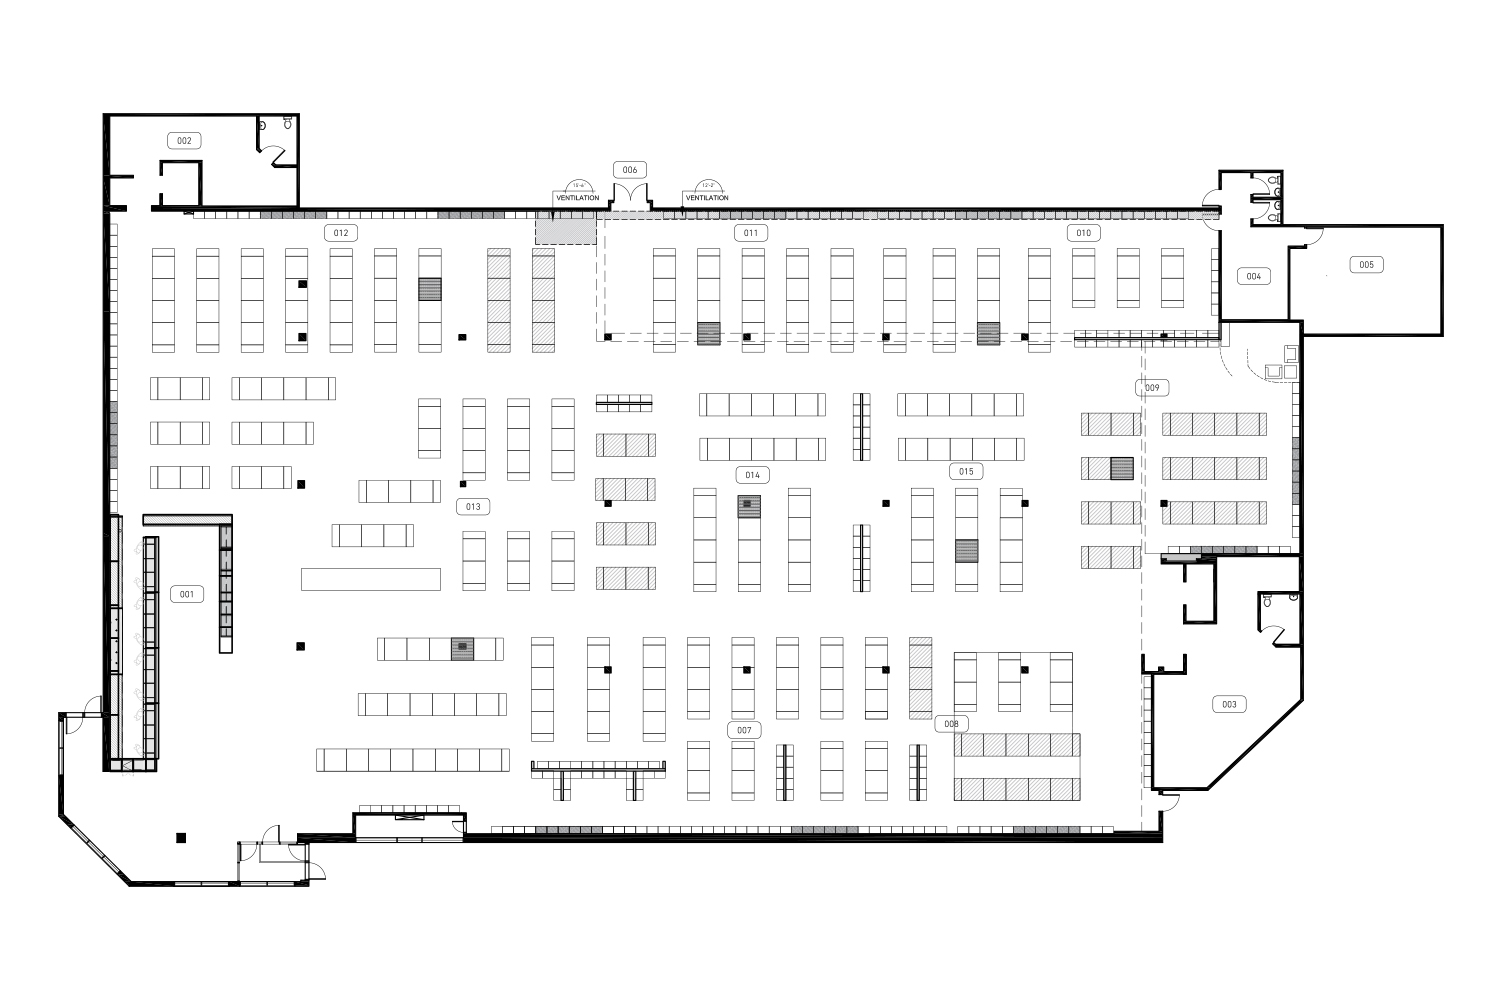 Layout of a large-scale clothing store